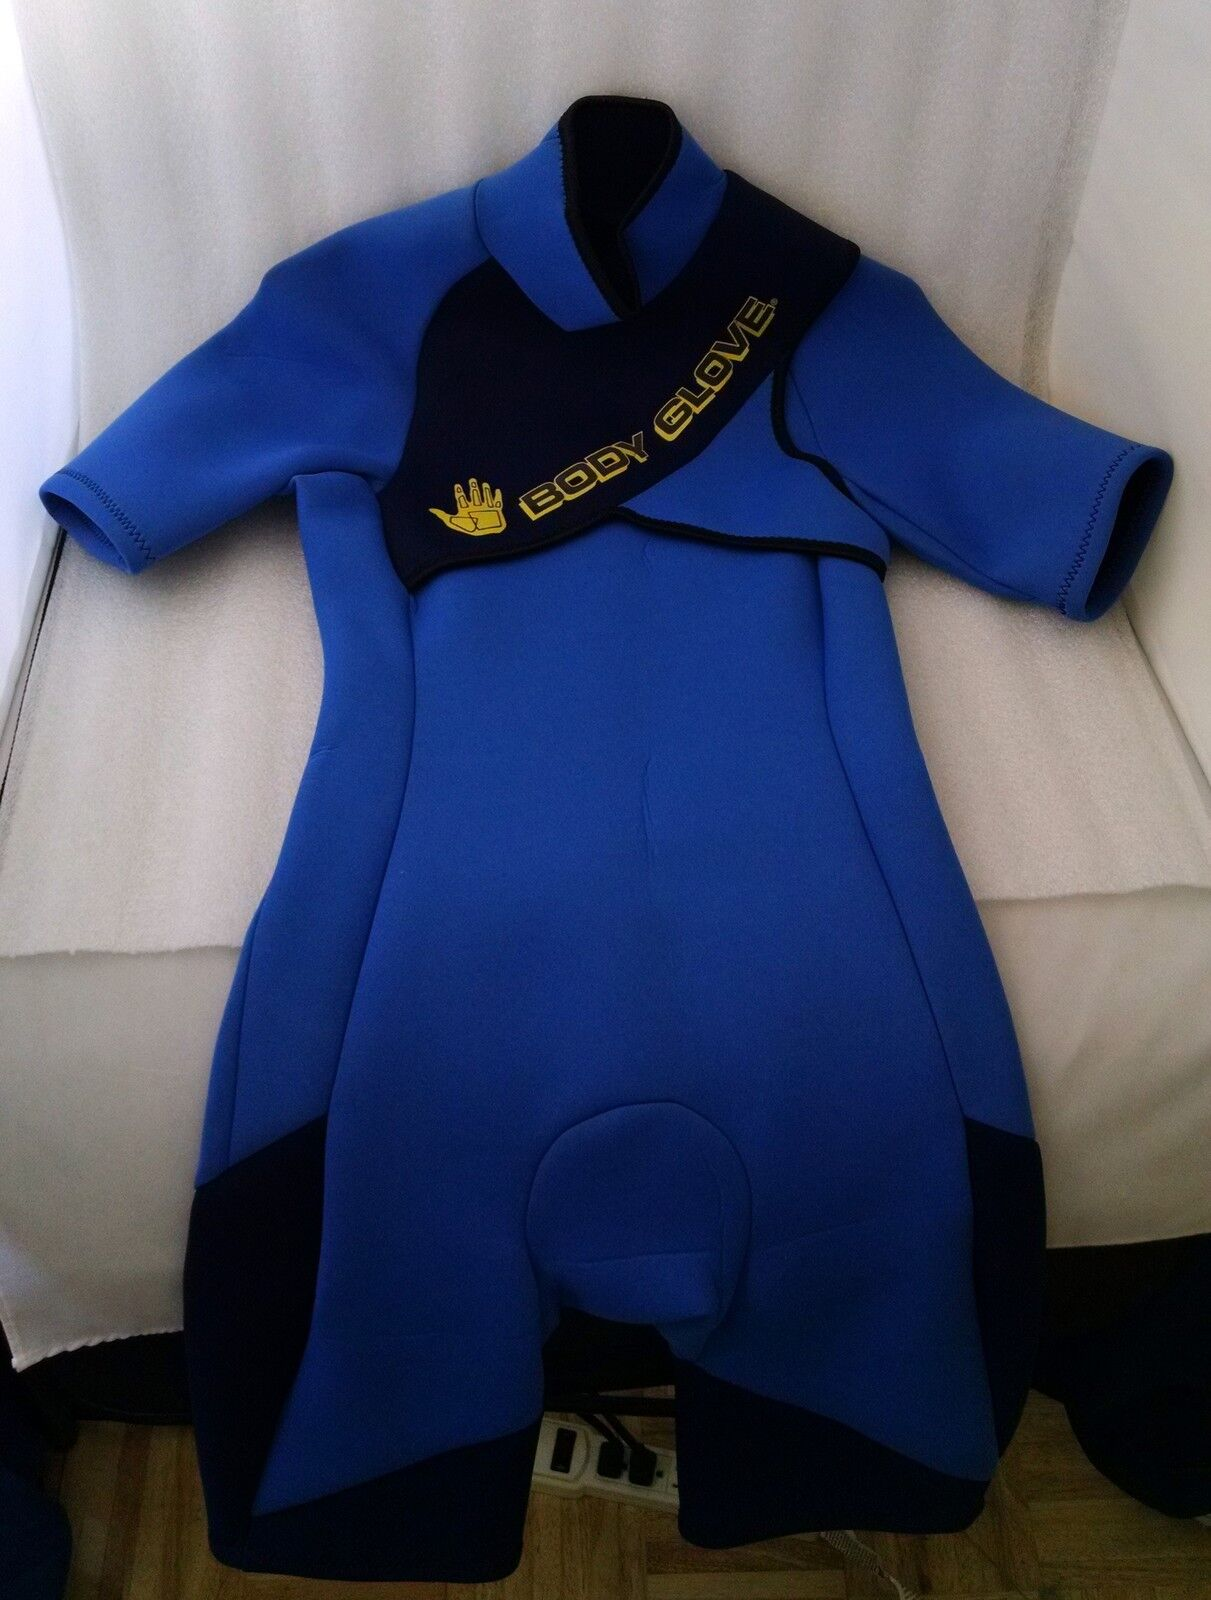 Body G  Shorty Spring Wetsuit Size Small bluee   cheap and high quality